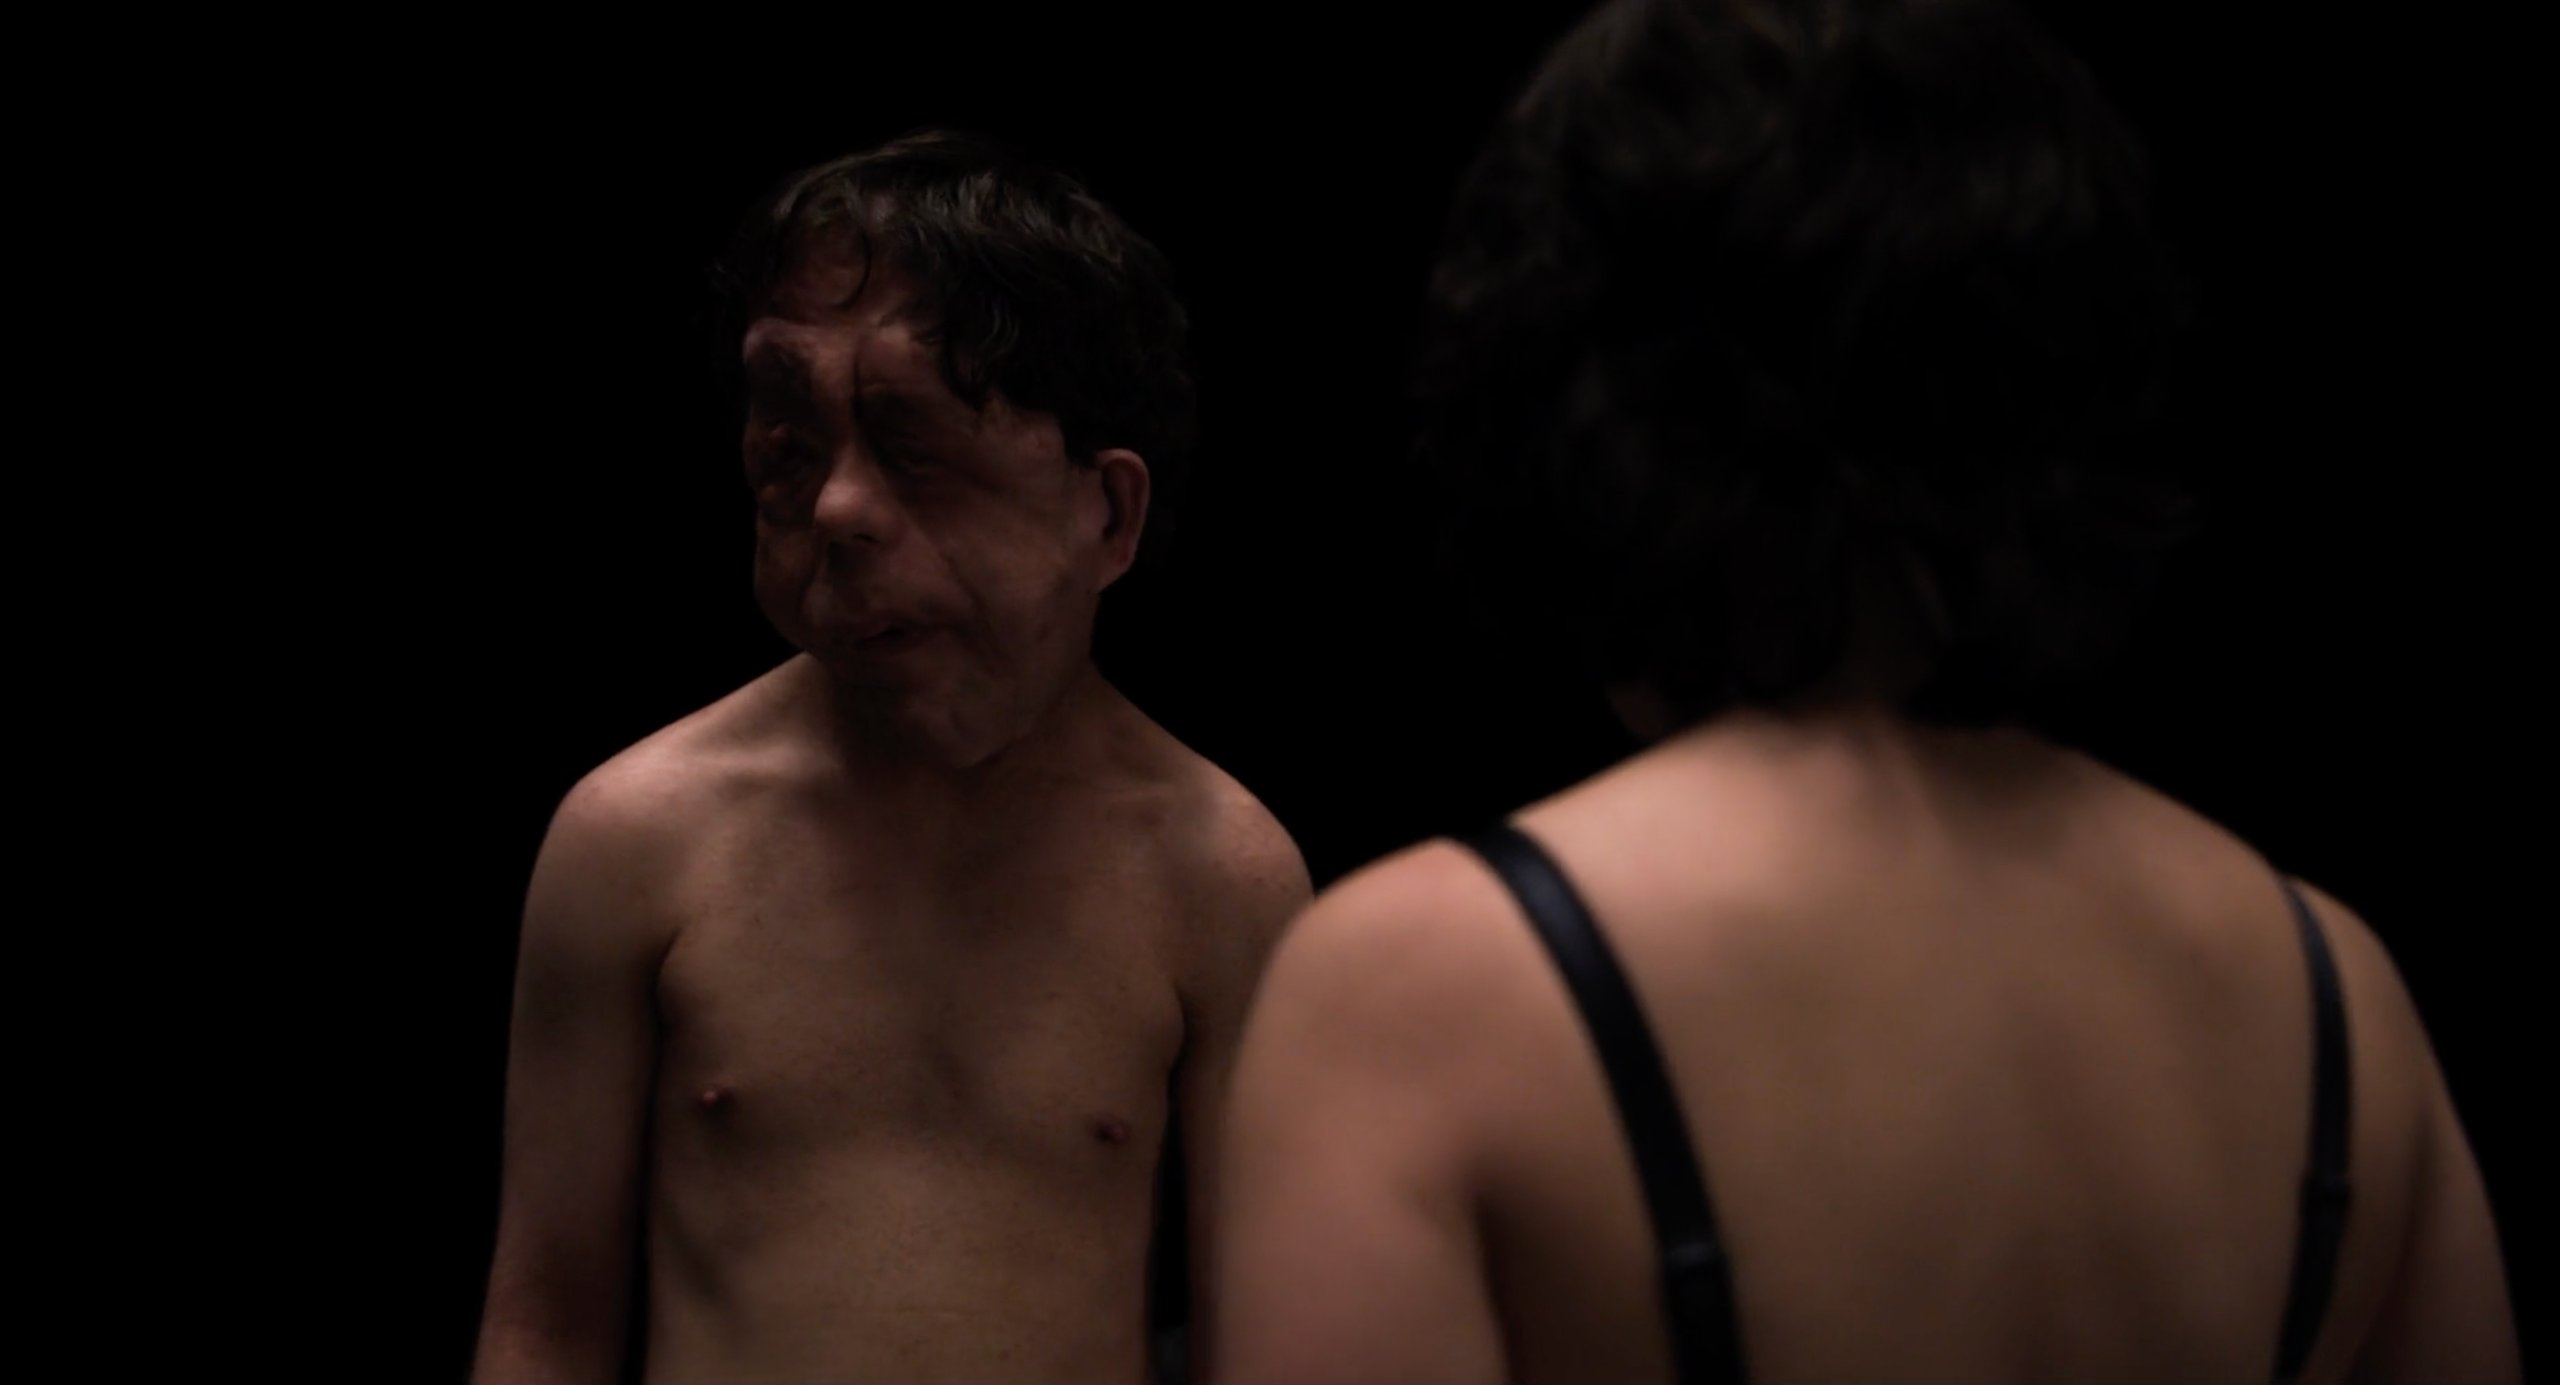 Scarlett Johansson and the disfigured man stand in the black room in Under the Skin